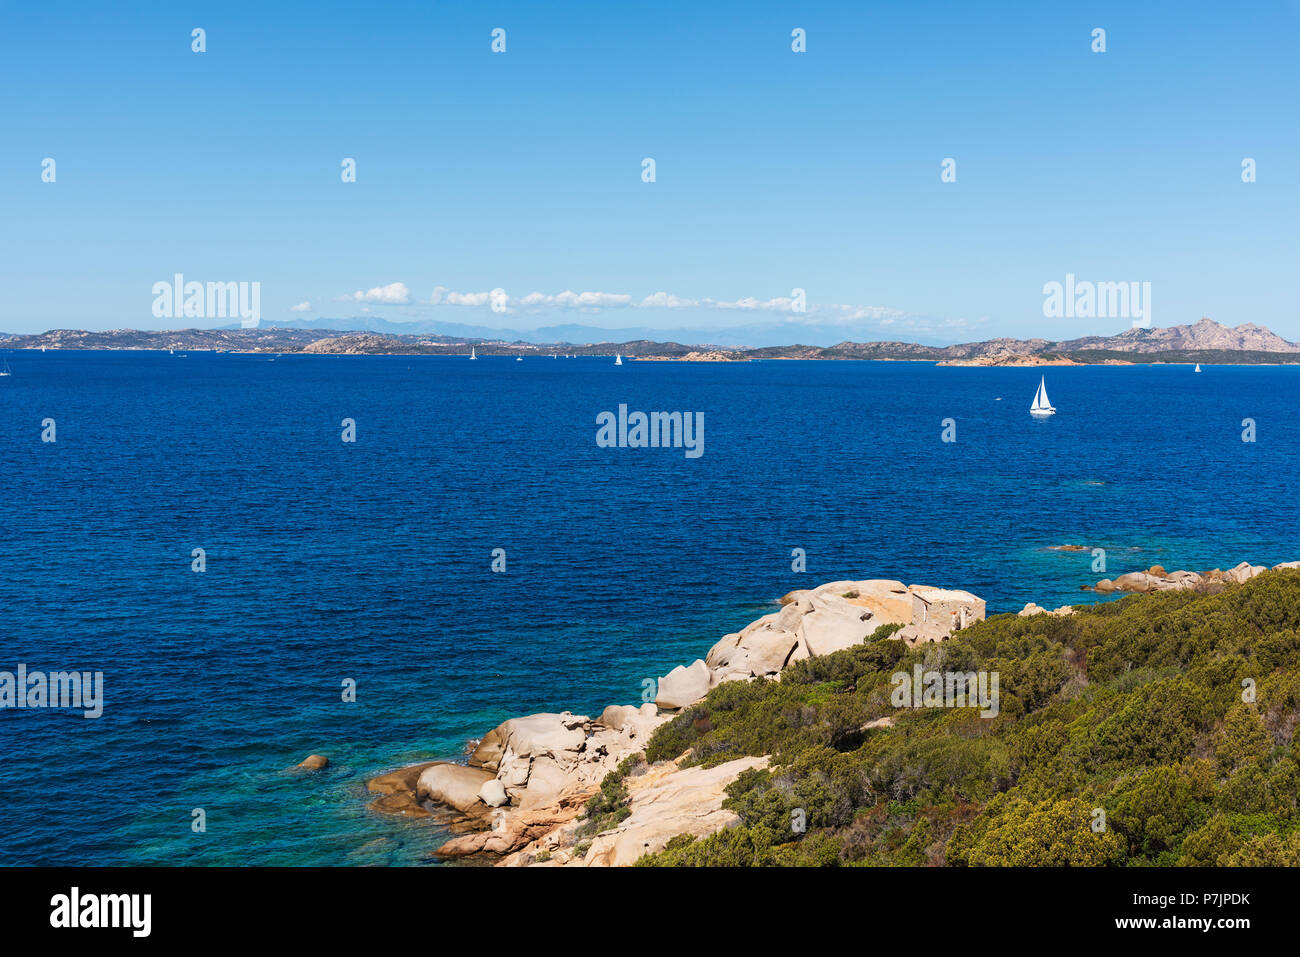 a view of the clear water of the Mediterranean sea and a group of rock formations in a quiet beach in the coast of Baja Sardinia, in the famous Costa  - Stock Image